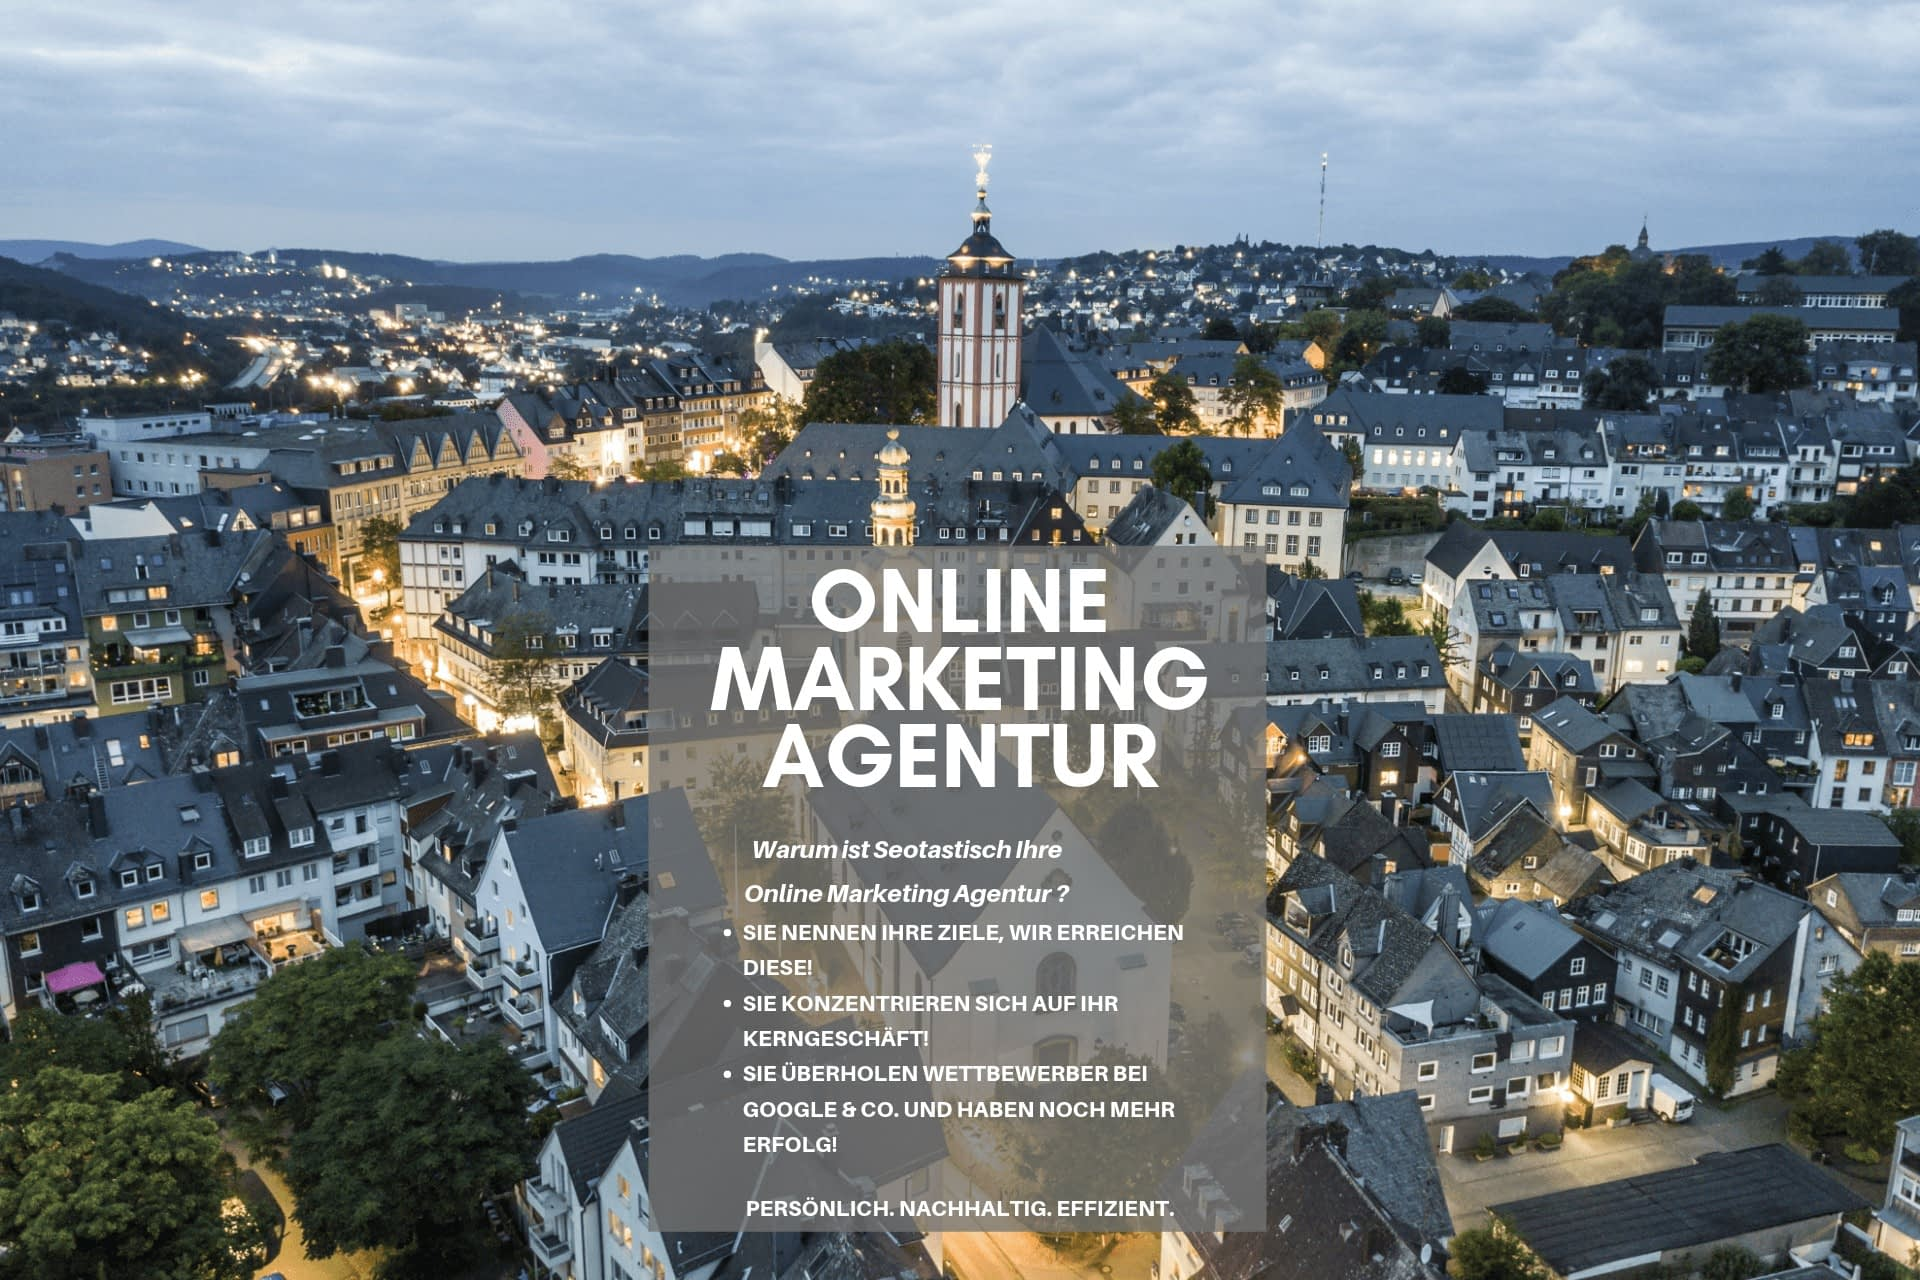 seo agentur siegen, seo siegen, siegen marketing